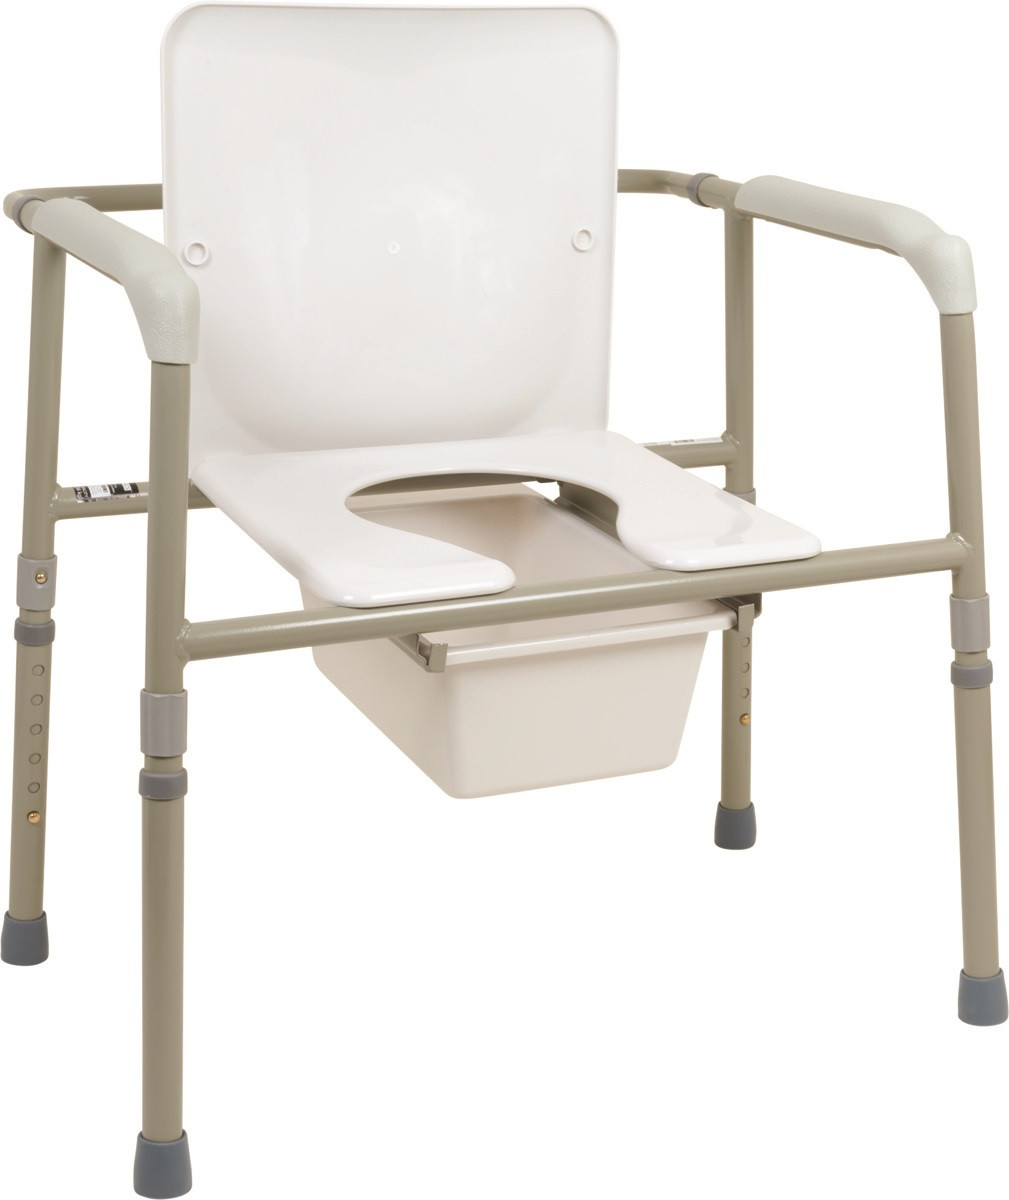 Bedside Commode Chair Probasics Heavy Duty Wide Commode Bsb31c